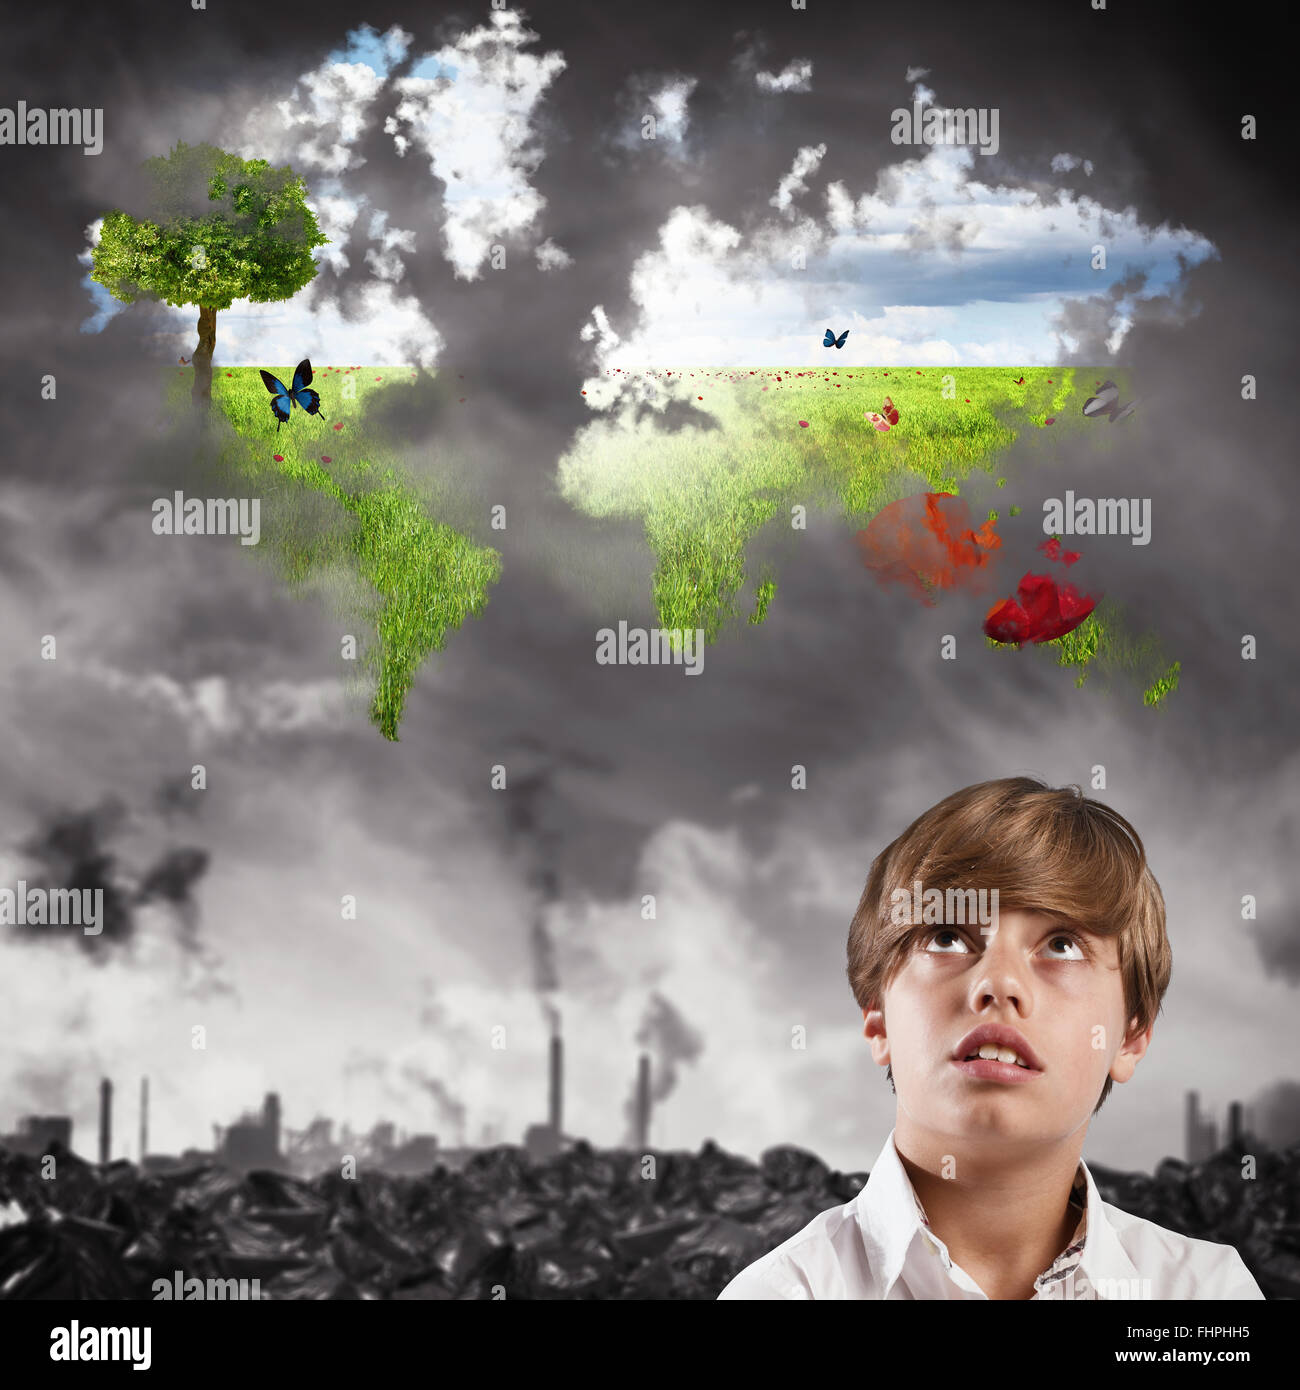 Child imagines a clean world - Stock Image